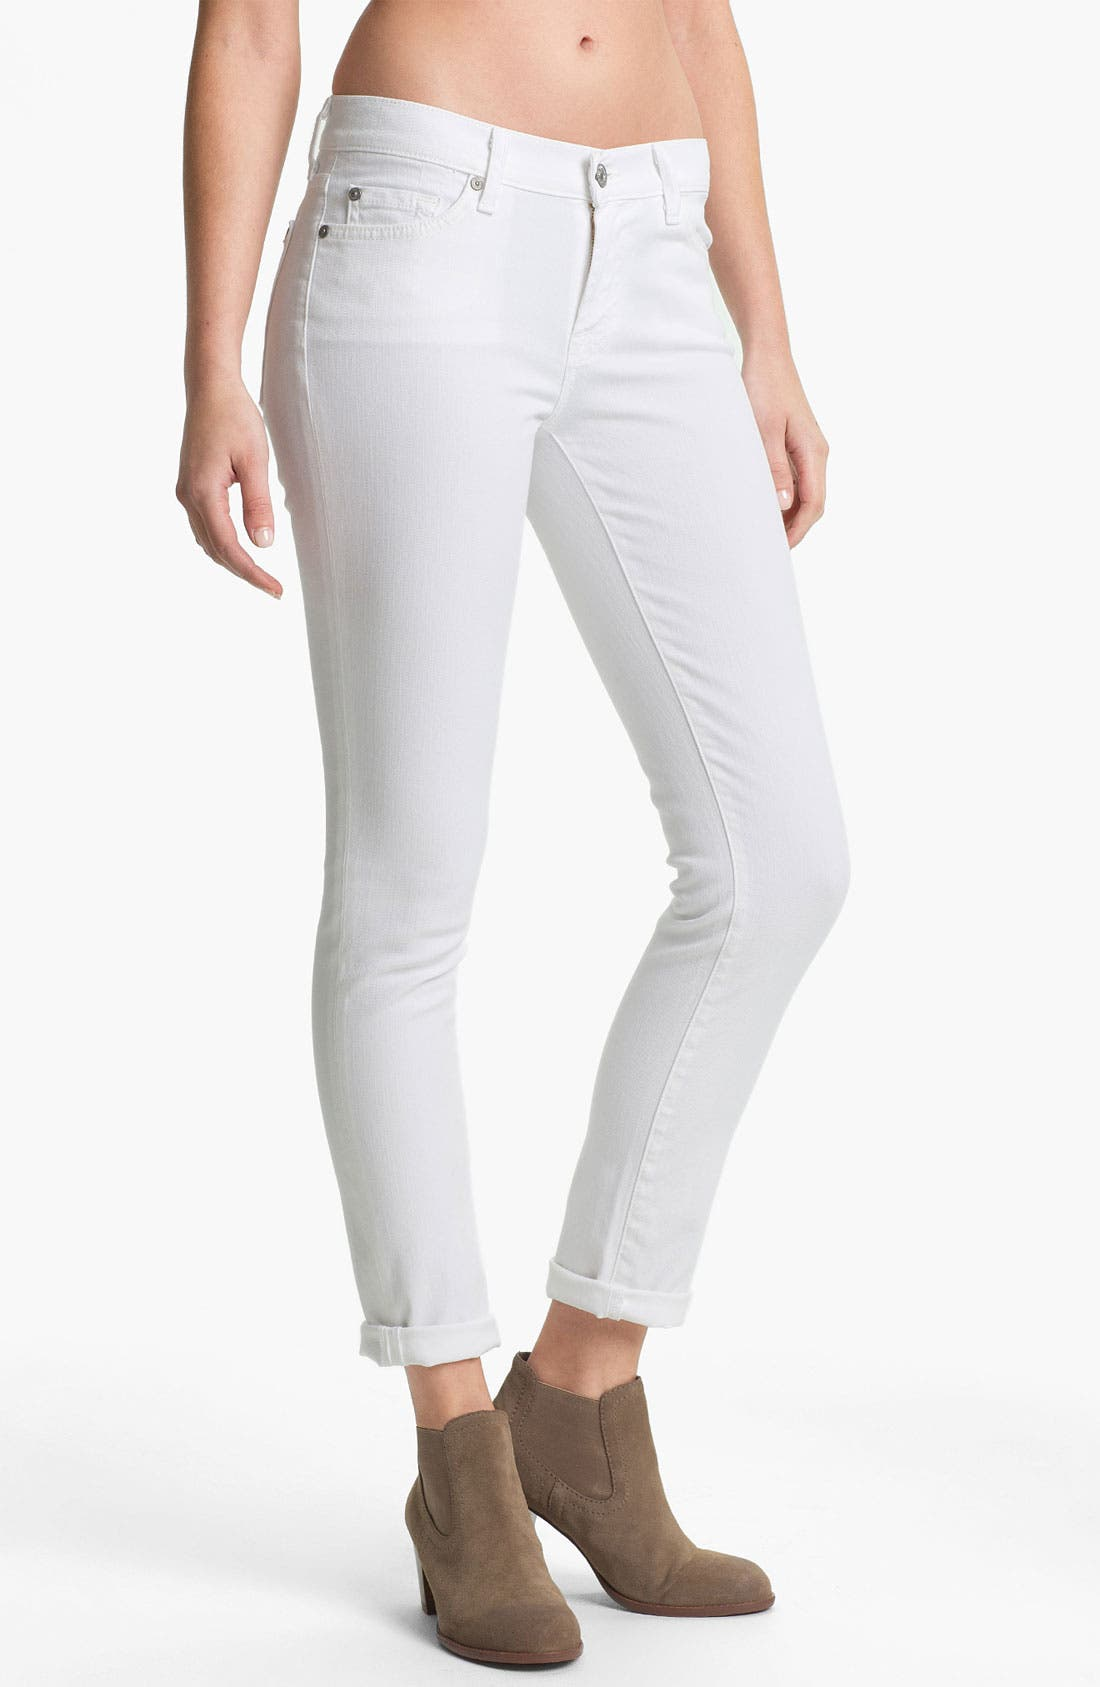 Alternate Image 1 Selected - 7 For All Mankind® 'The Slim Cigarette' Stretch Jeans (Clean White)